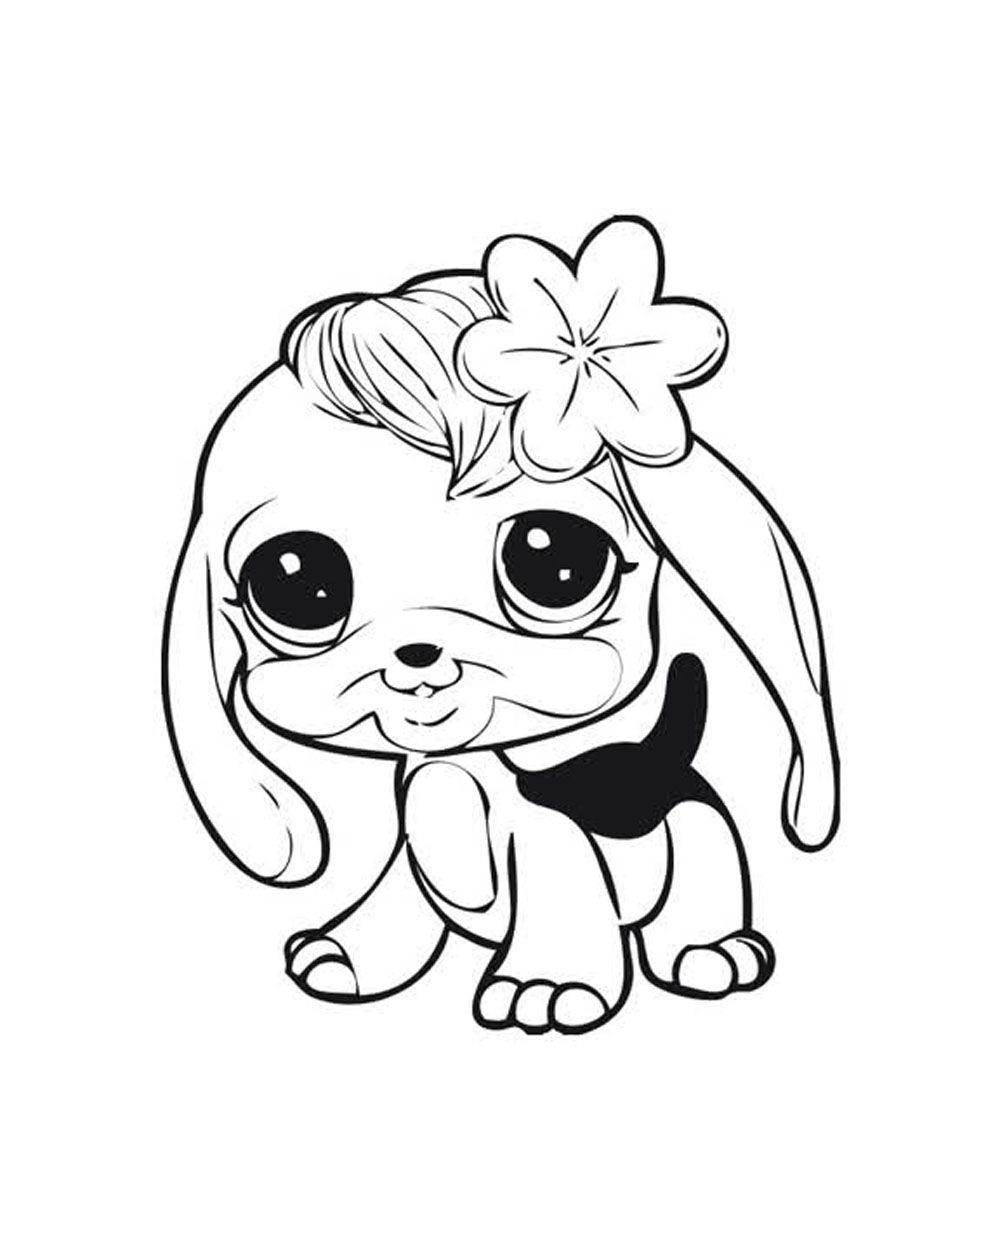 lps coloring pages to print littlest pet shop coloring pages to color online for free pages coloring lps to print